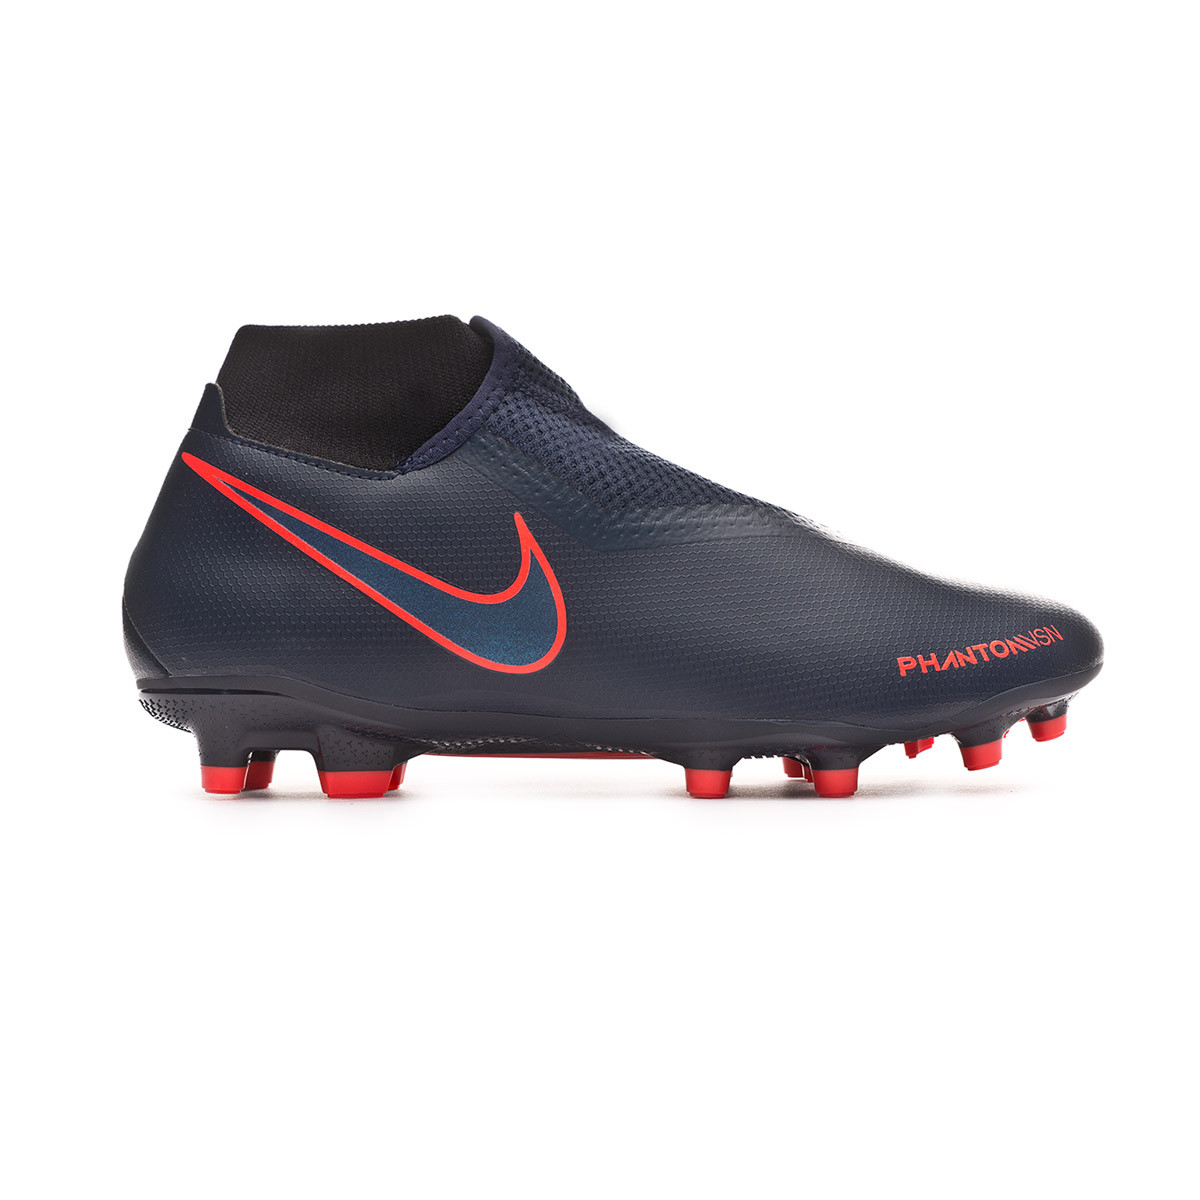 Details about Nike Mens Nike Phantom VSN Club DF FGMG Football Soccer Boots